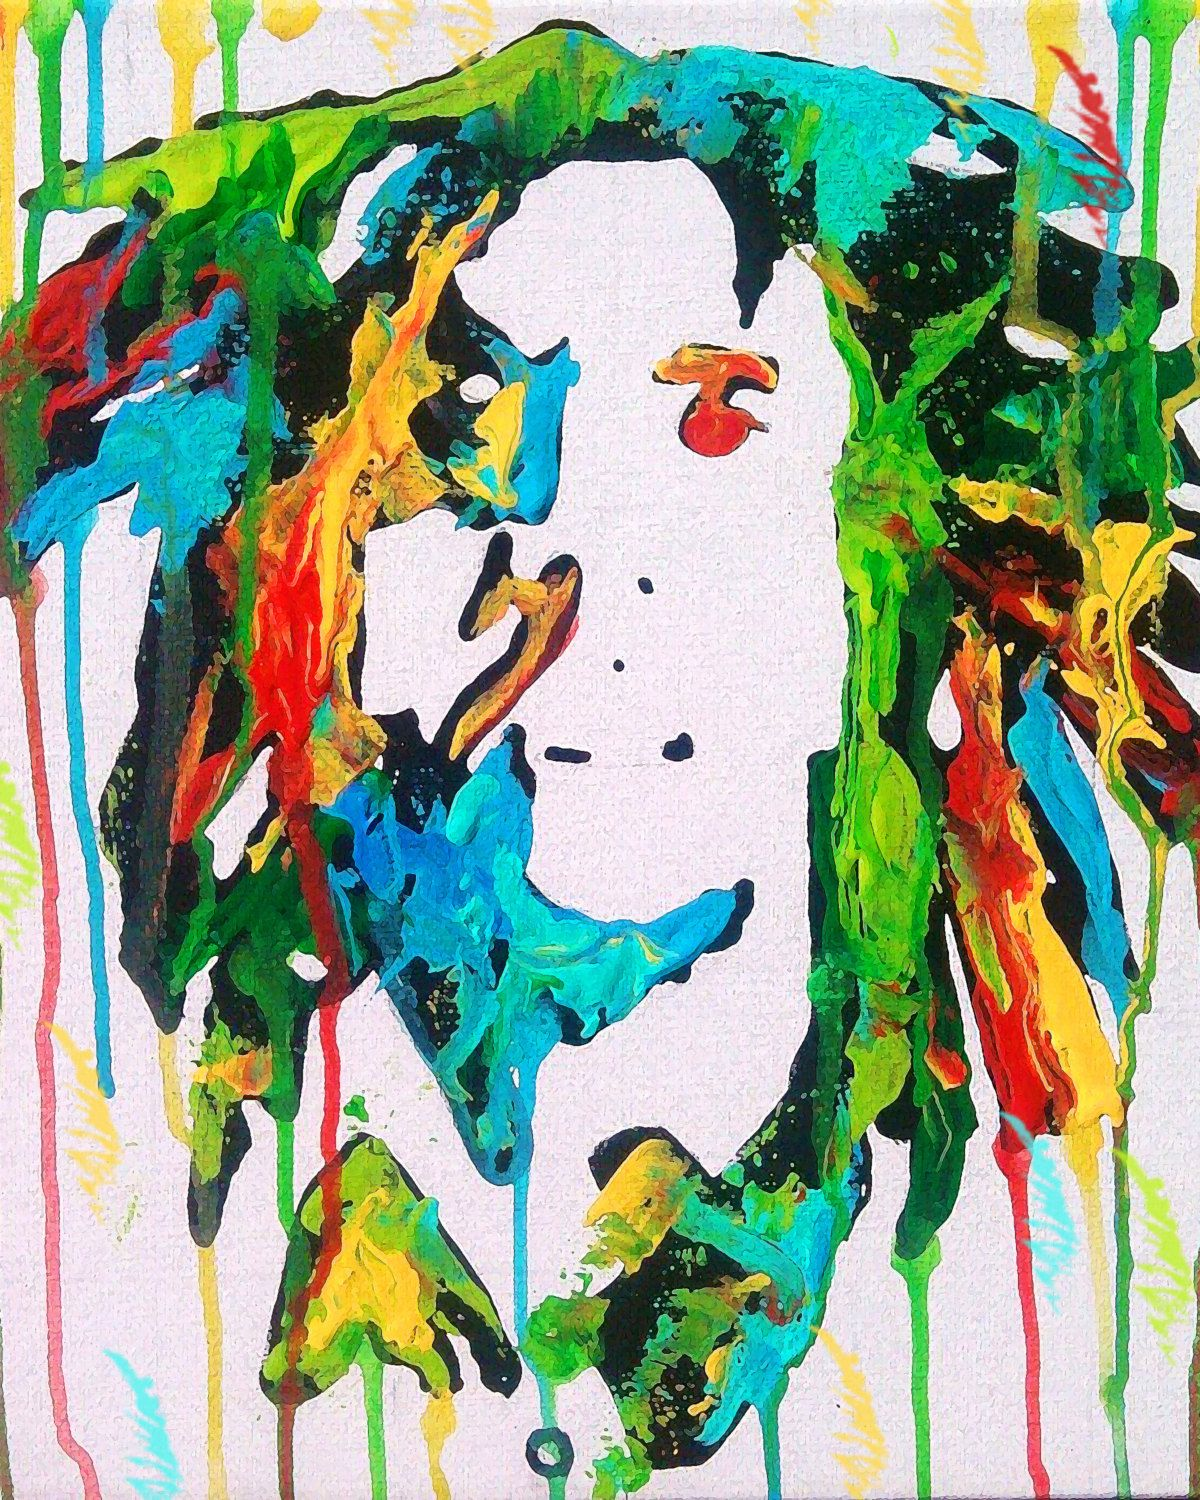 Bob marley painting print poster rasta jamaican one for Jamaican arts and crafts for sale